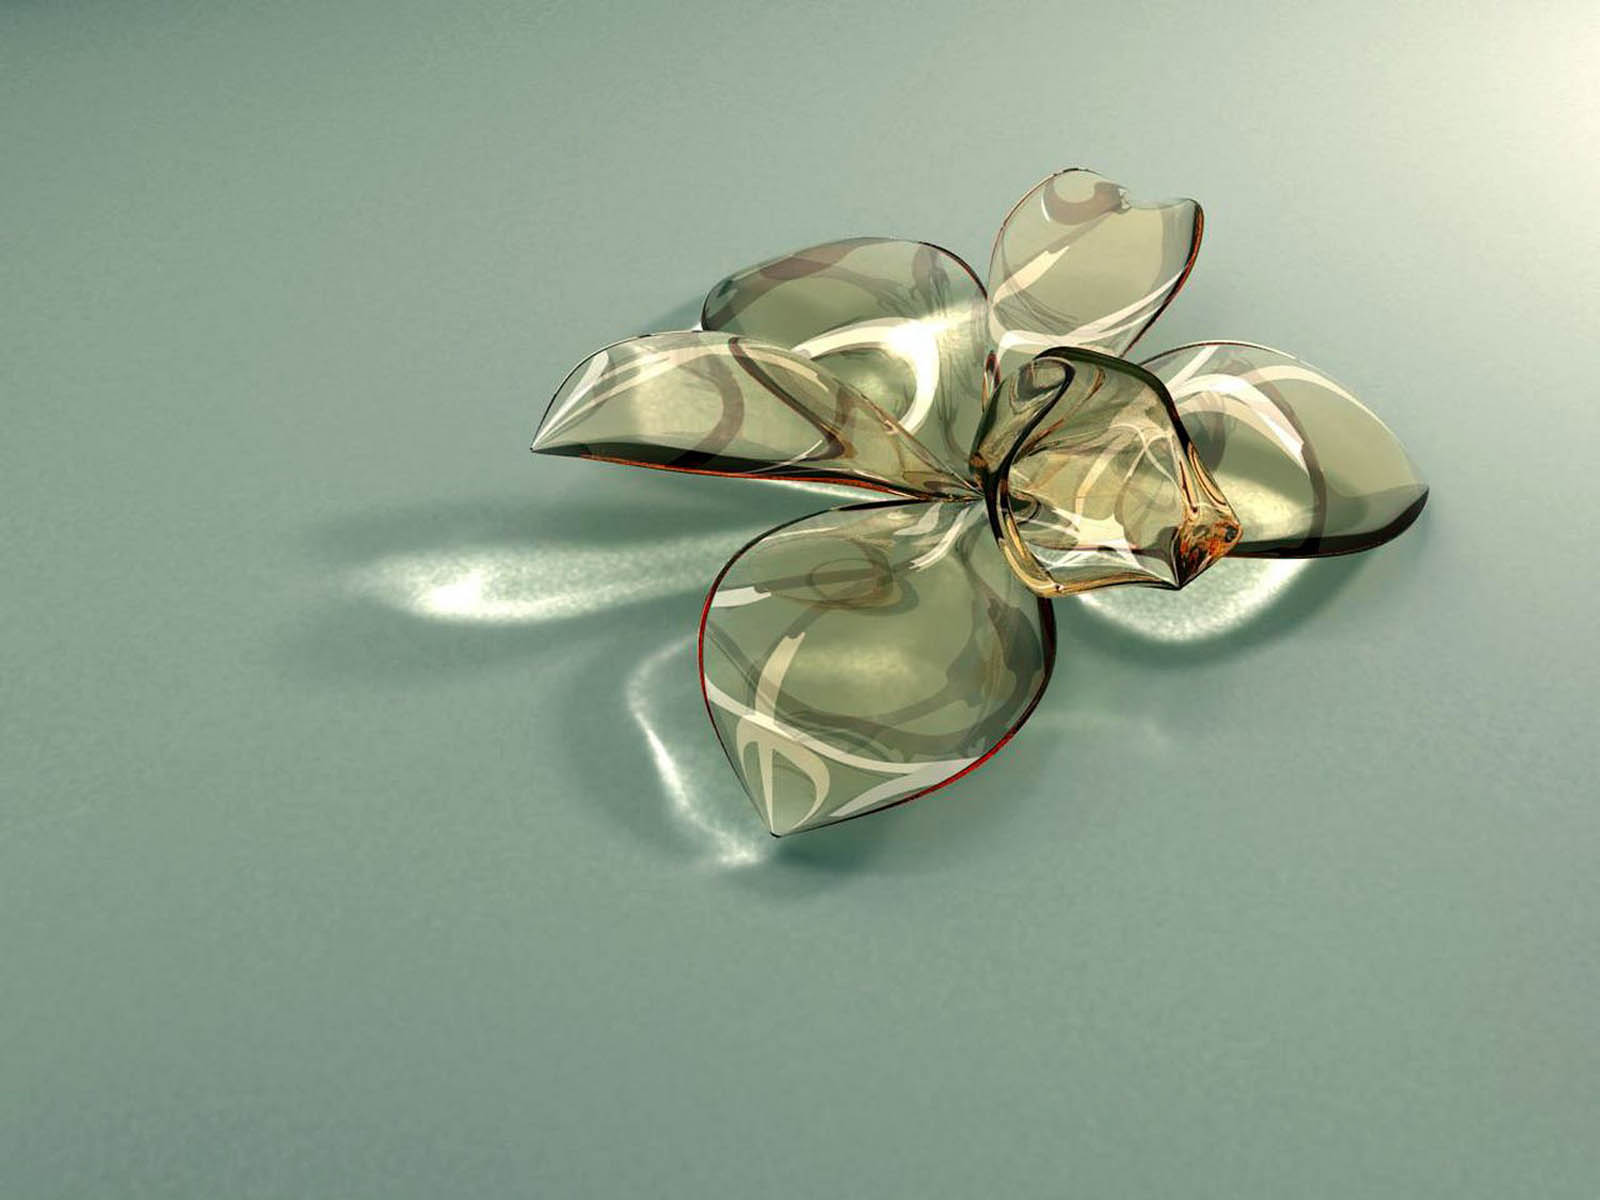 wallpapers: Glass Art Wallpapers